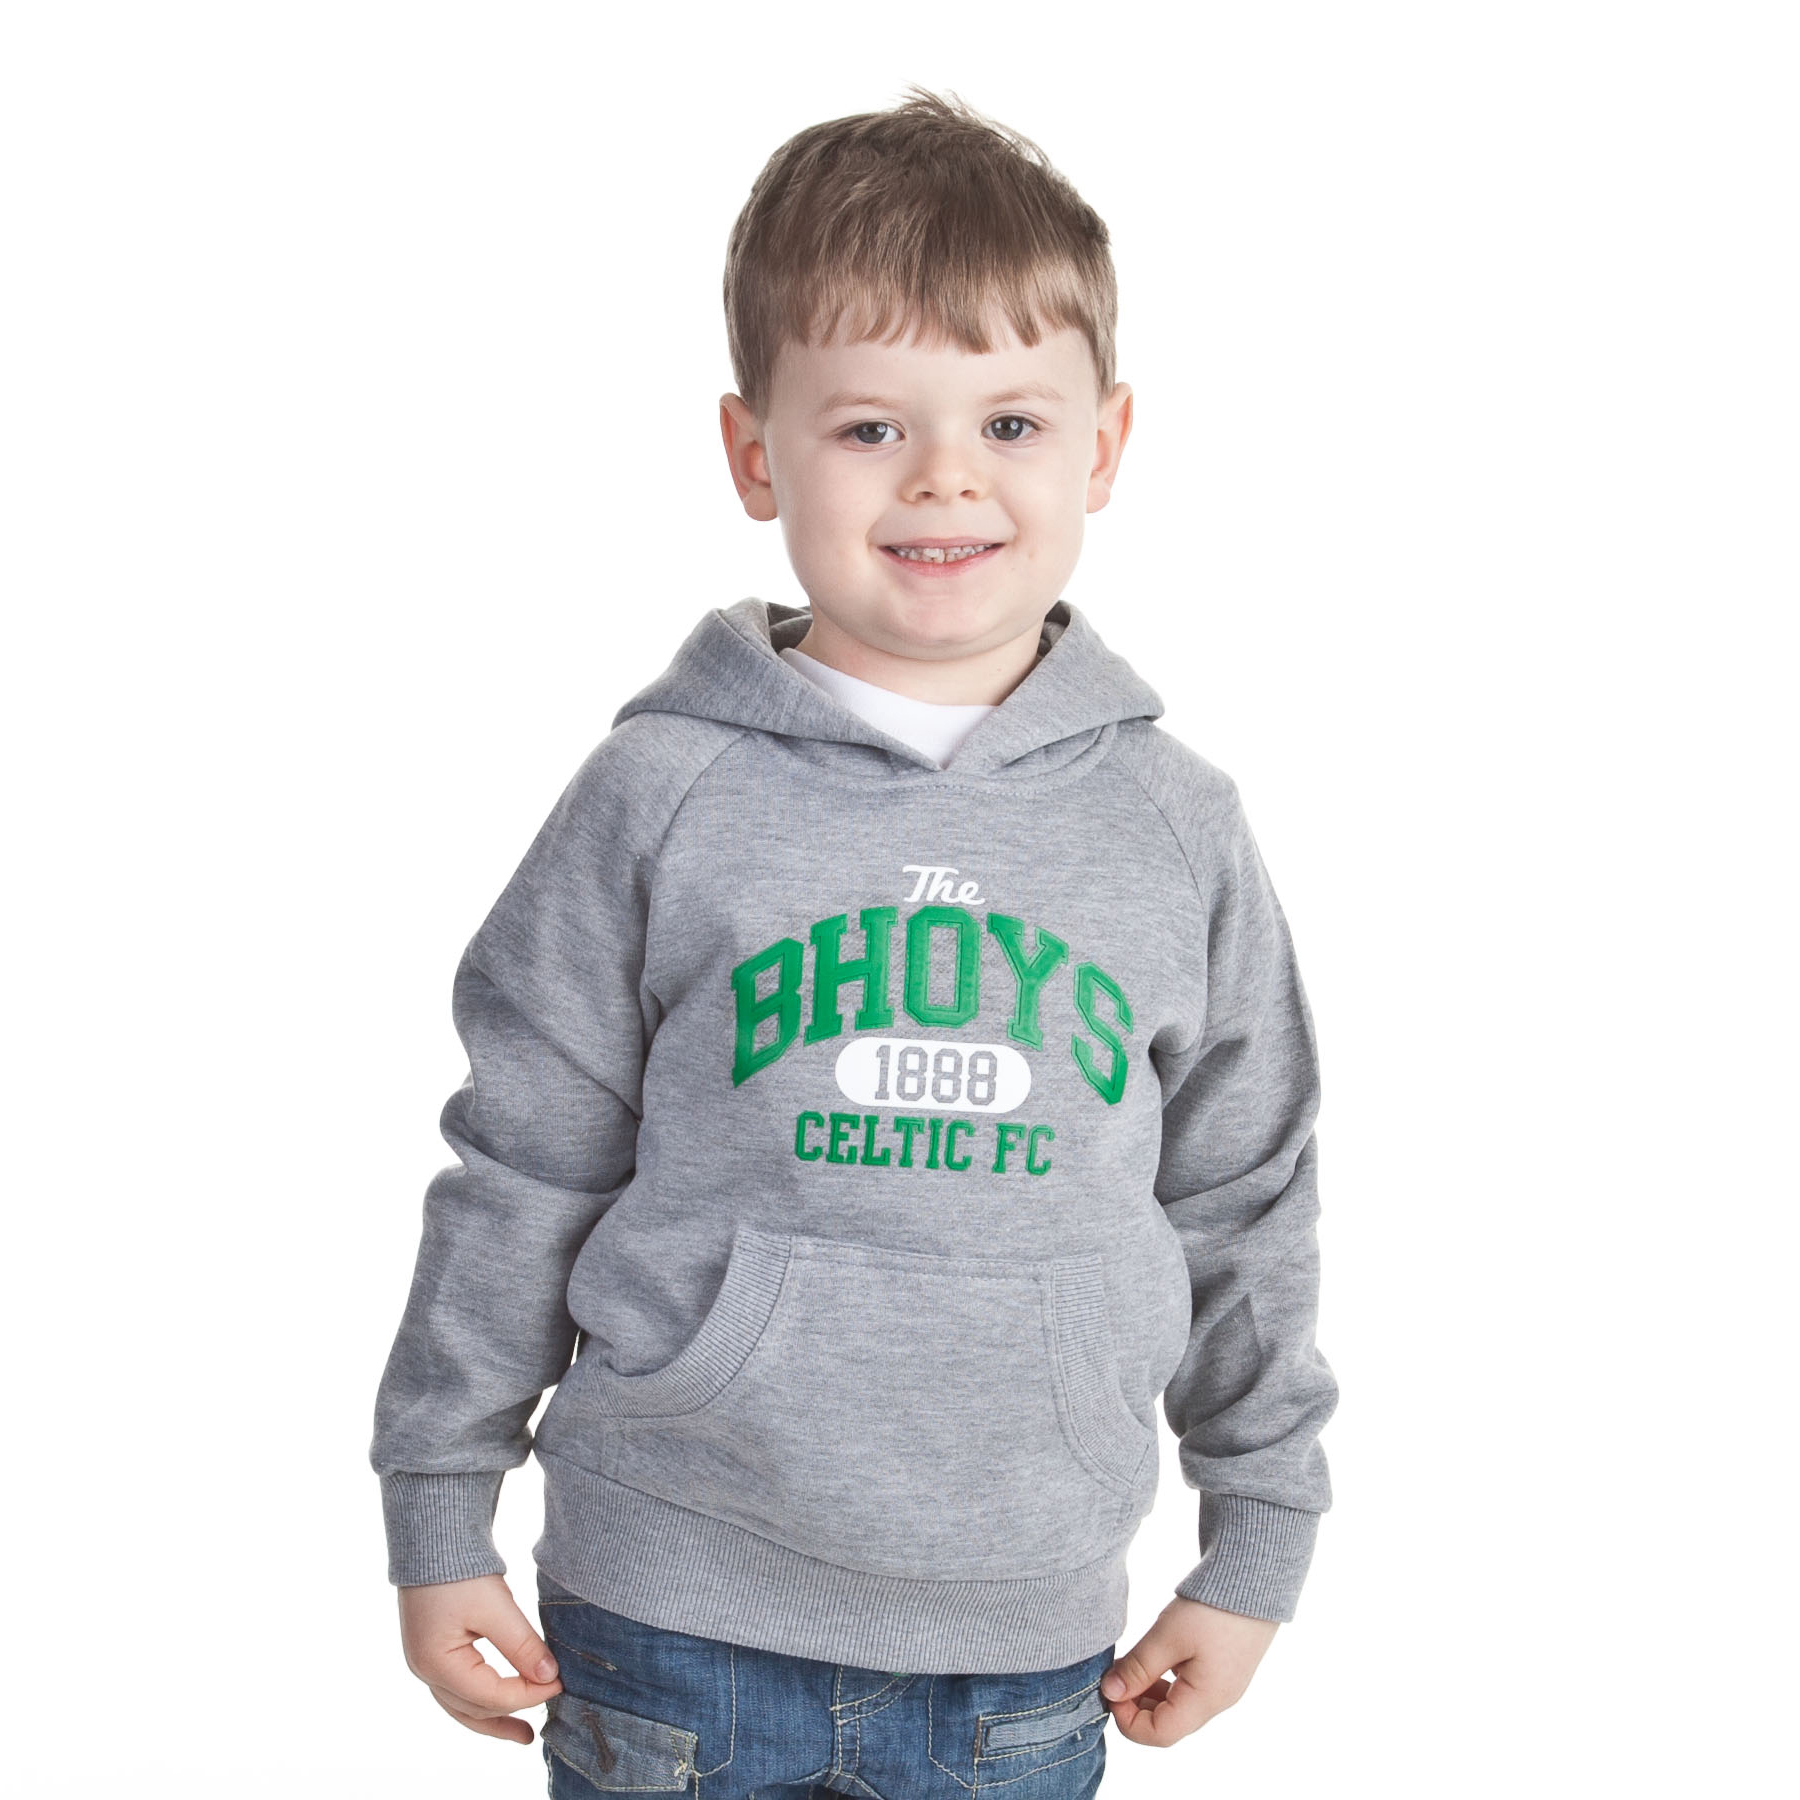 Celtic Essentials The Bhoys Graphic Hoody - Grey Marl - Boys